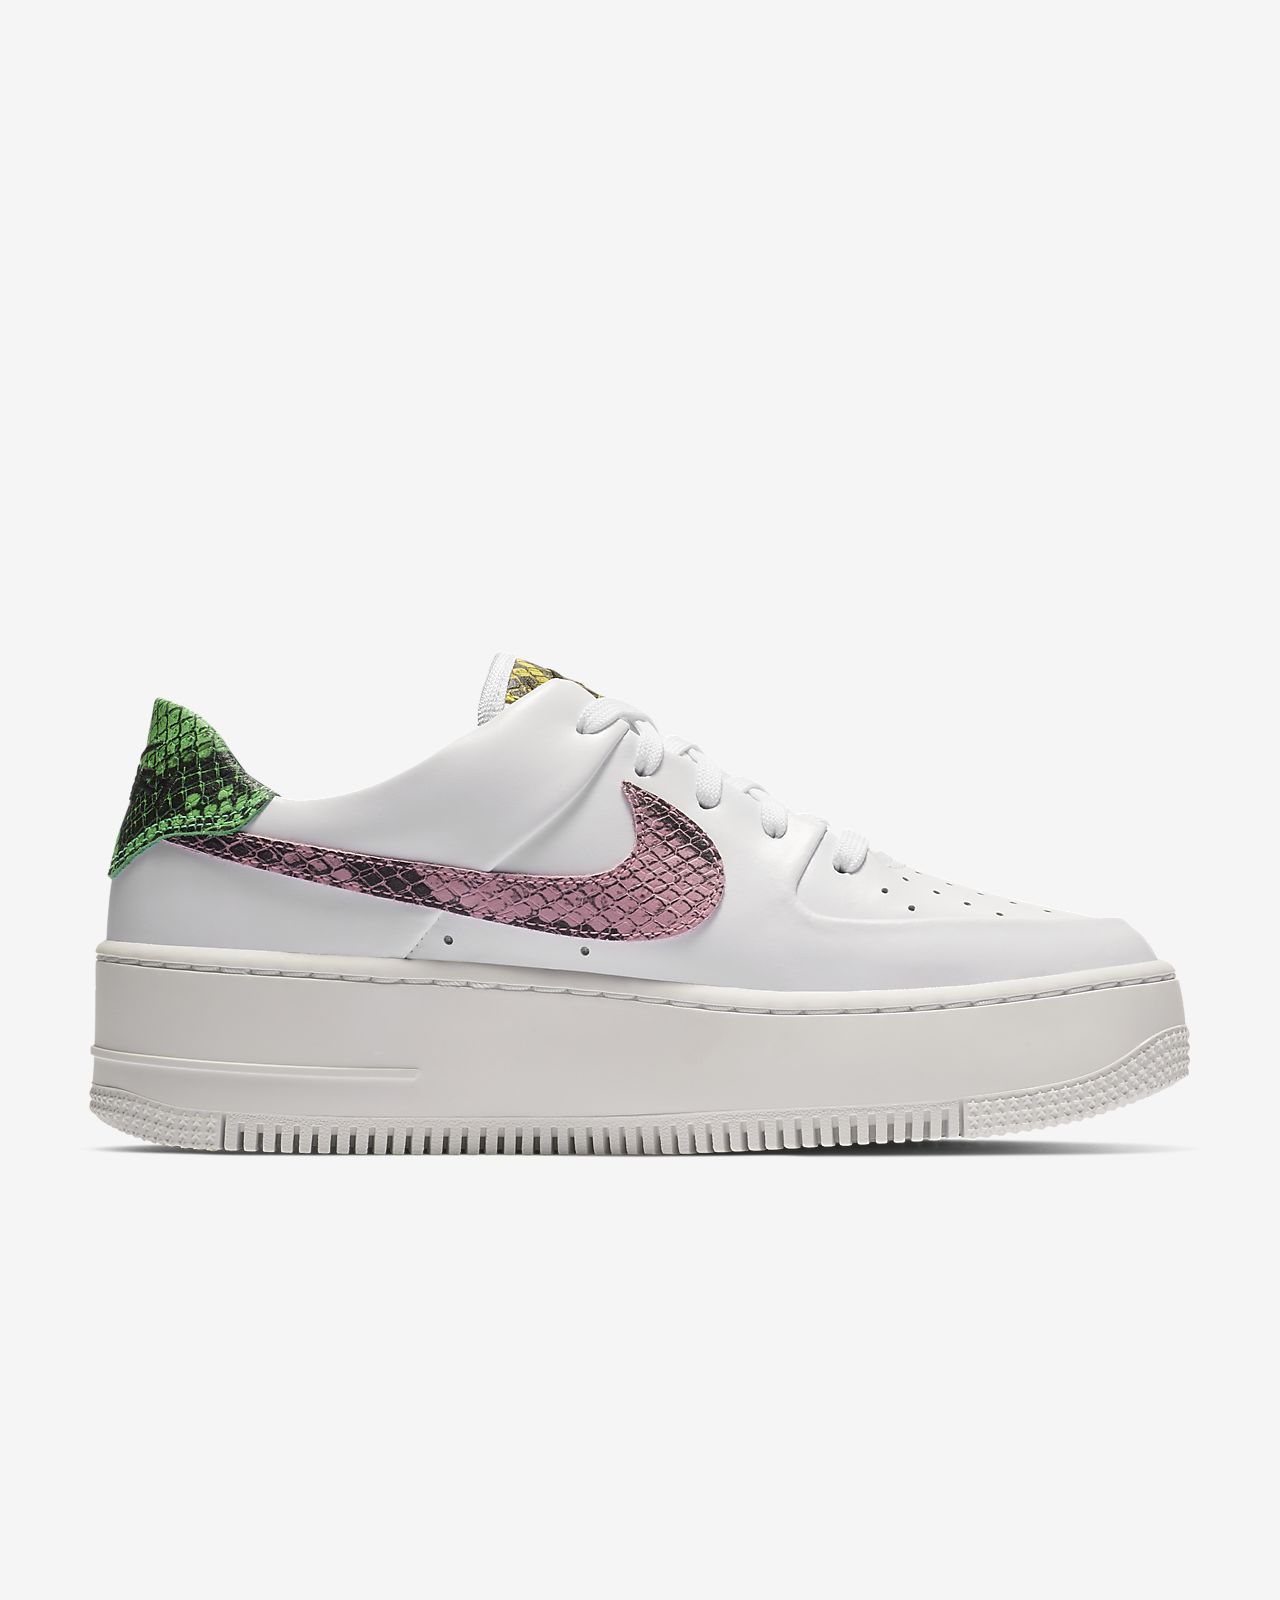 new product 1ed4e eb25c Nike Air Force 1 Sage Low Premium Animal